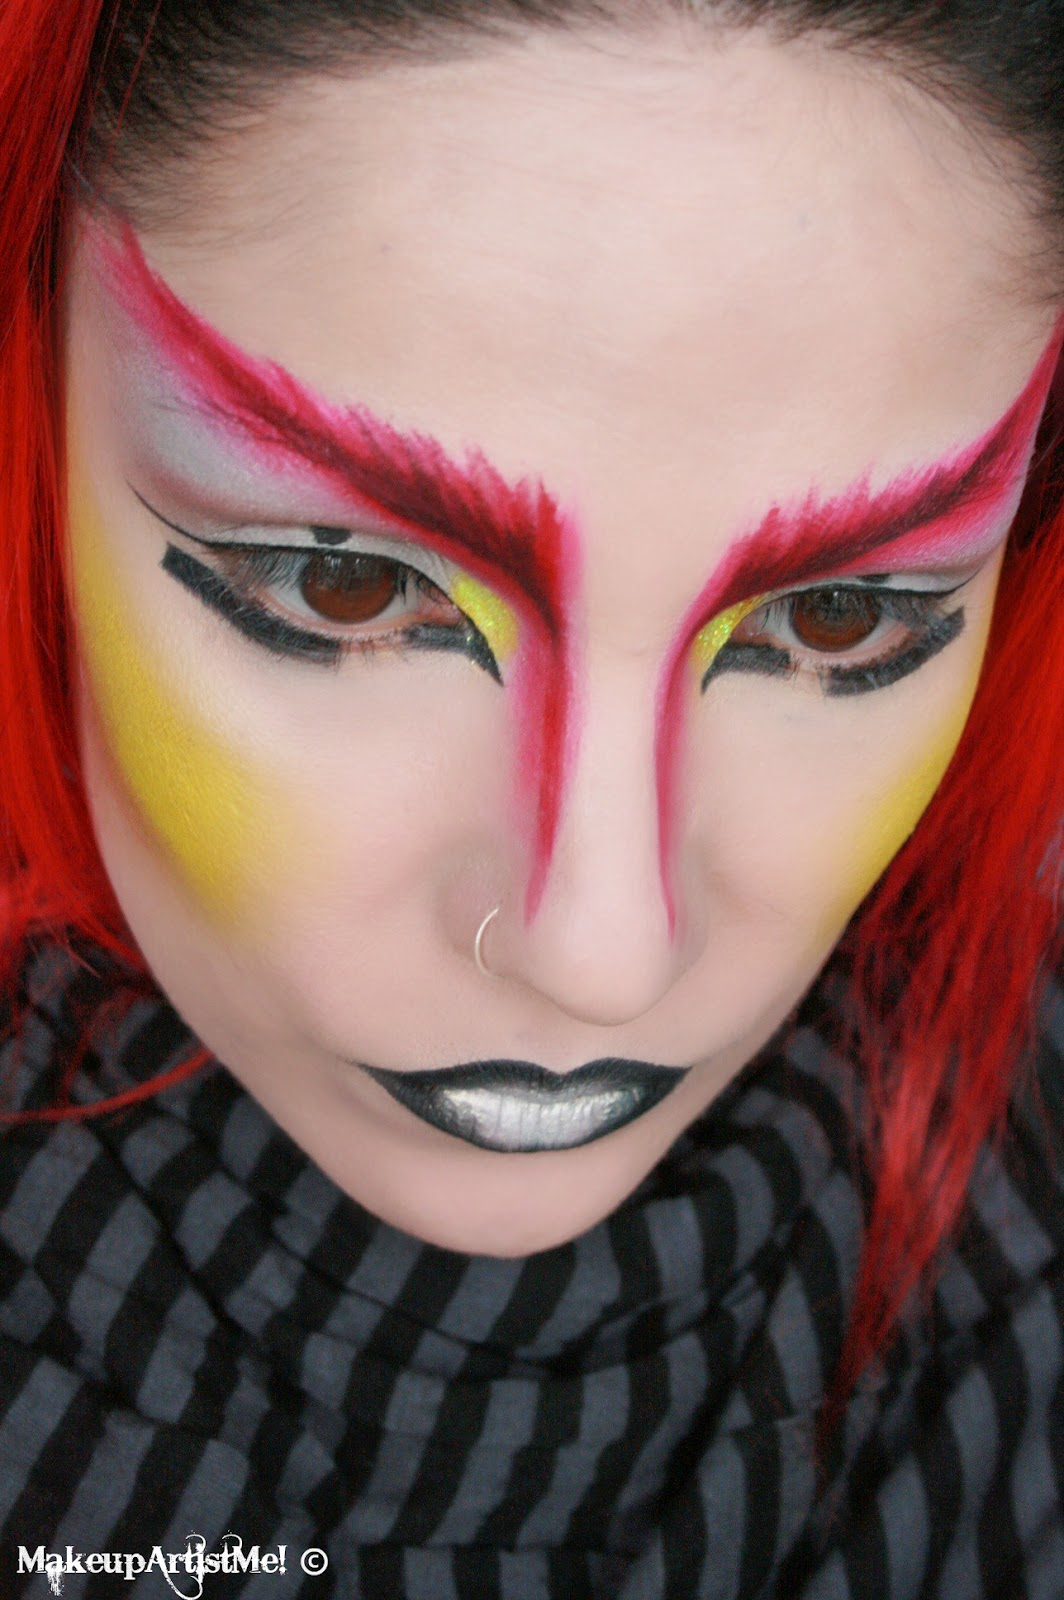 Make Up Tutorials Youtube: Make-up Artist Me!: Warrior -- An Artistic Makeup Look